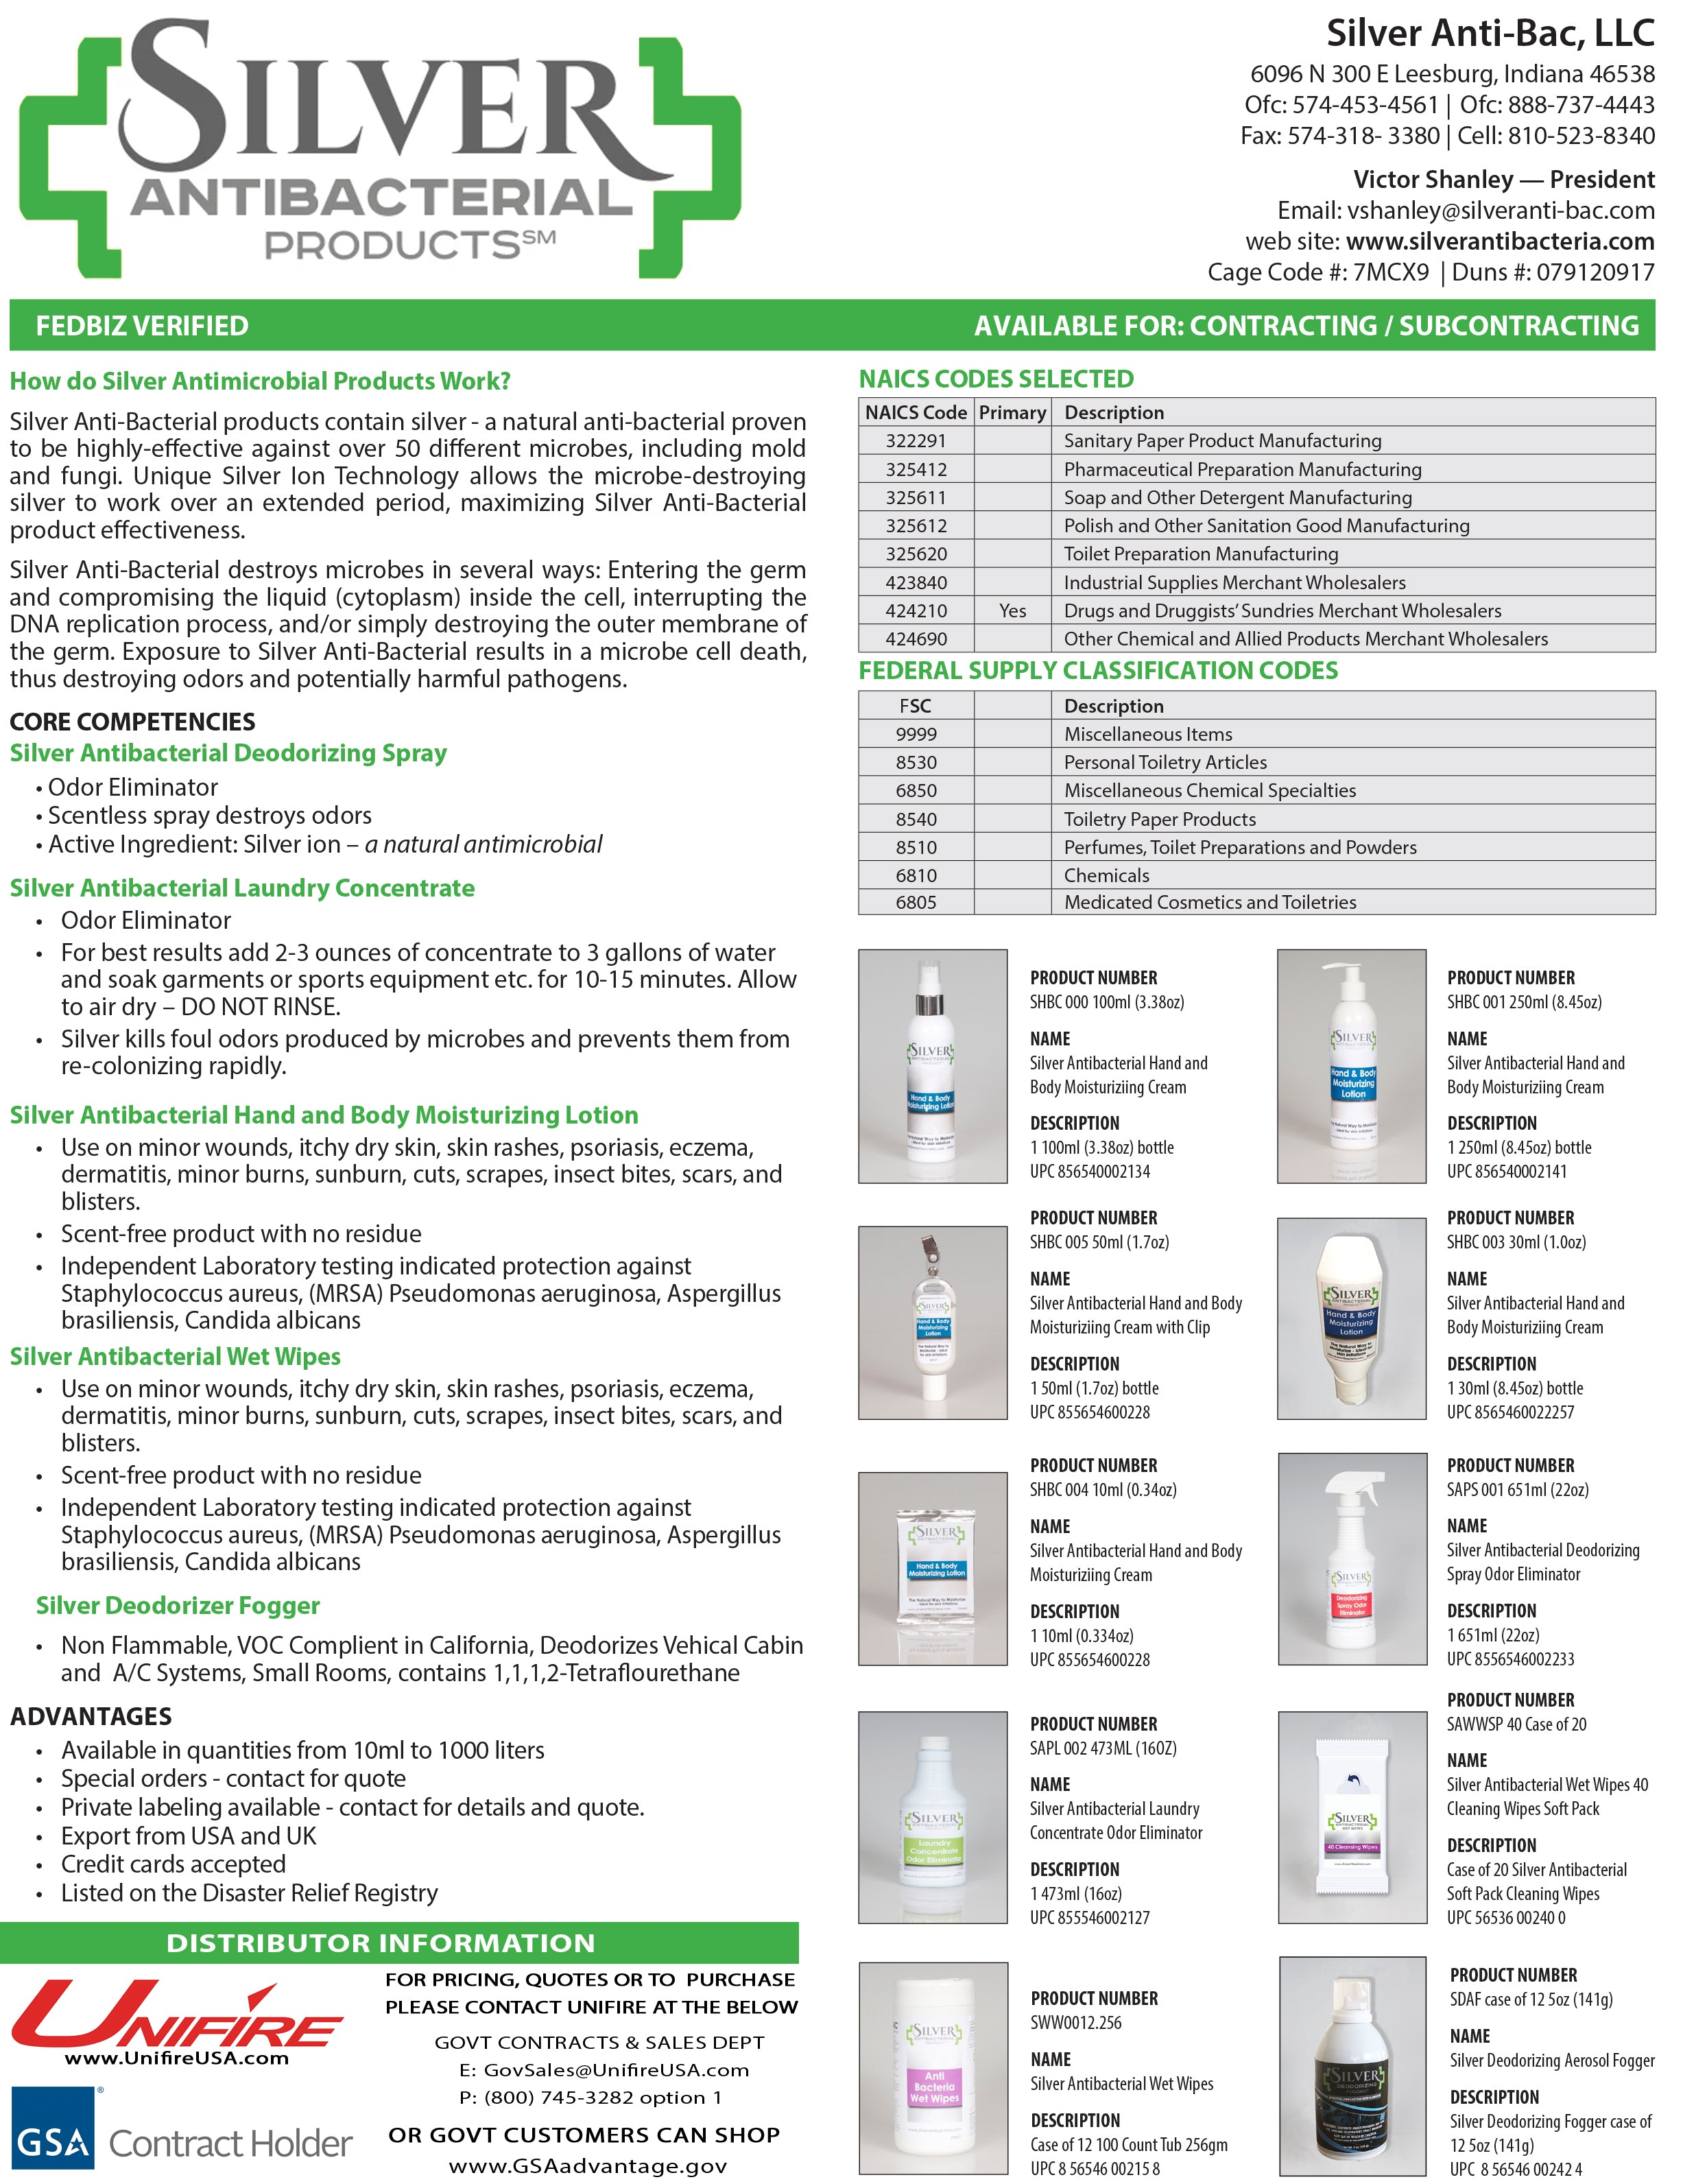 SILVER ANTIBACTERIAL PRODUCT INFO